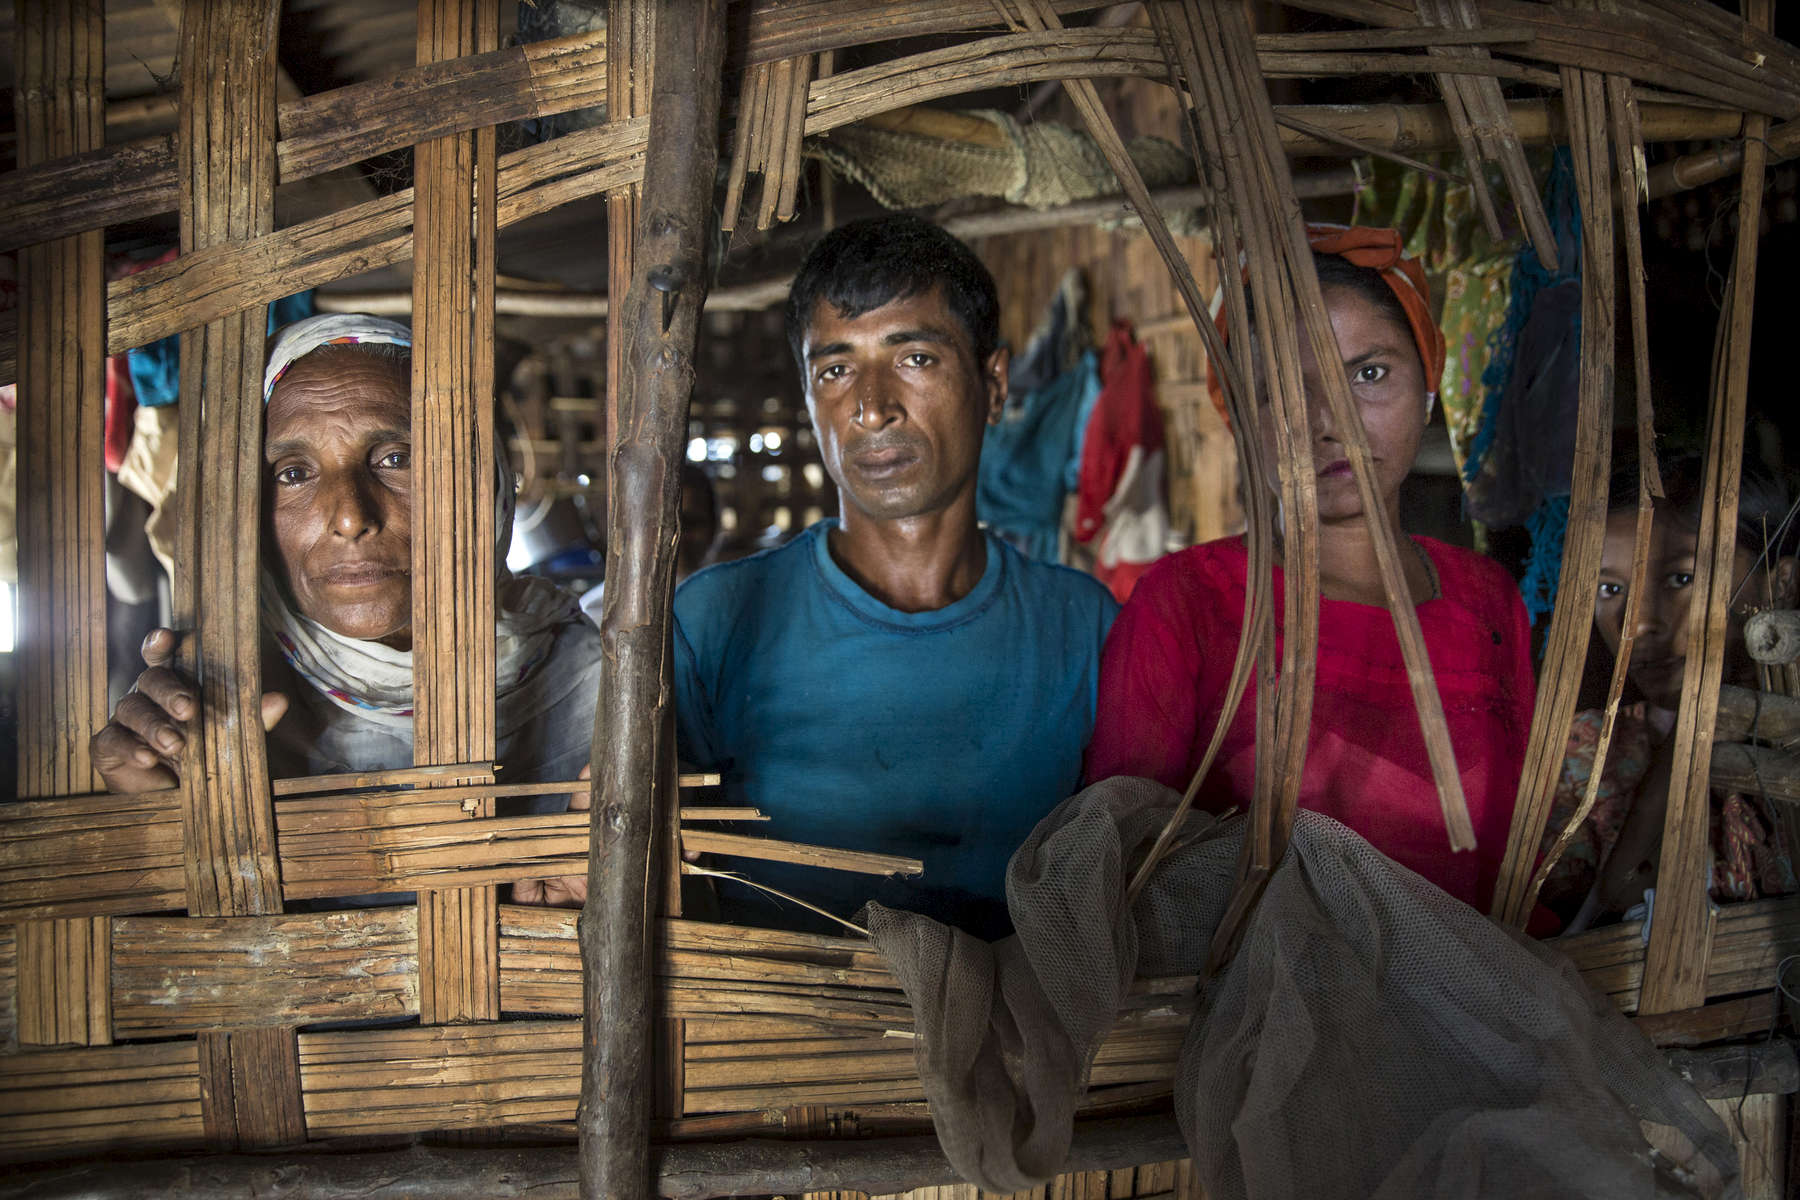 MAYEBON - NOV 8: Albella (left) Abdul Hamid,40(center) and Moria Katu (right) look through the window of a thatched hut at the Mayebon IDP camp where registration has taken place forcing the residents of the camp to list themselves as Bengali not Rohingya. The new policy is called the Rakhine Action Plan. (Paula Bronstein for The Washington Post)